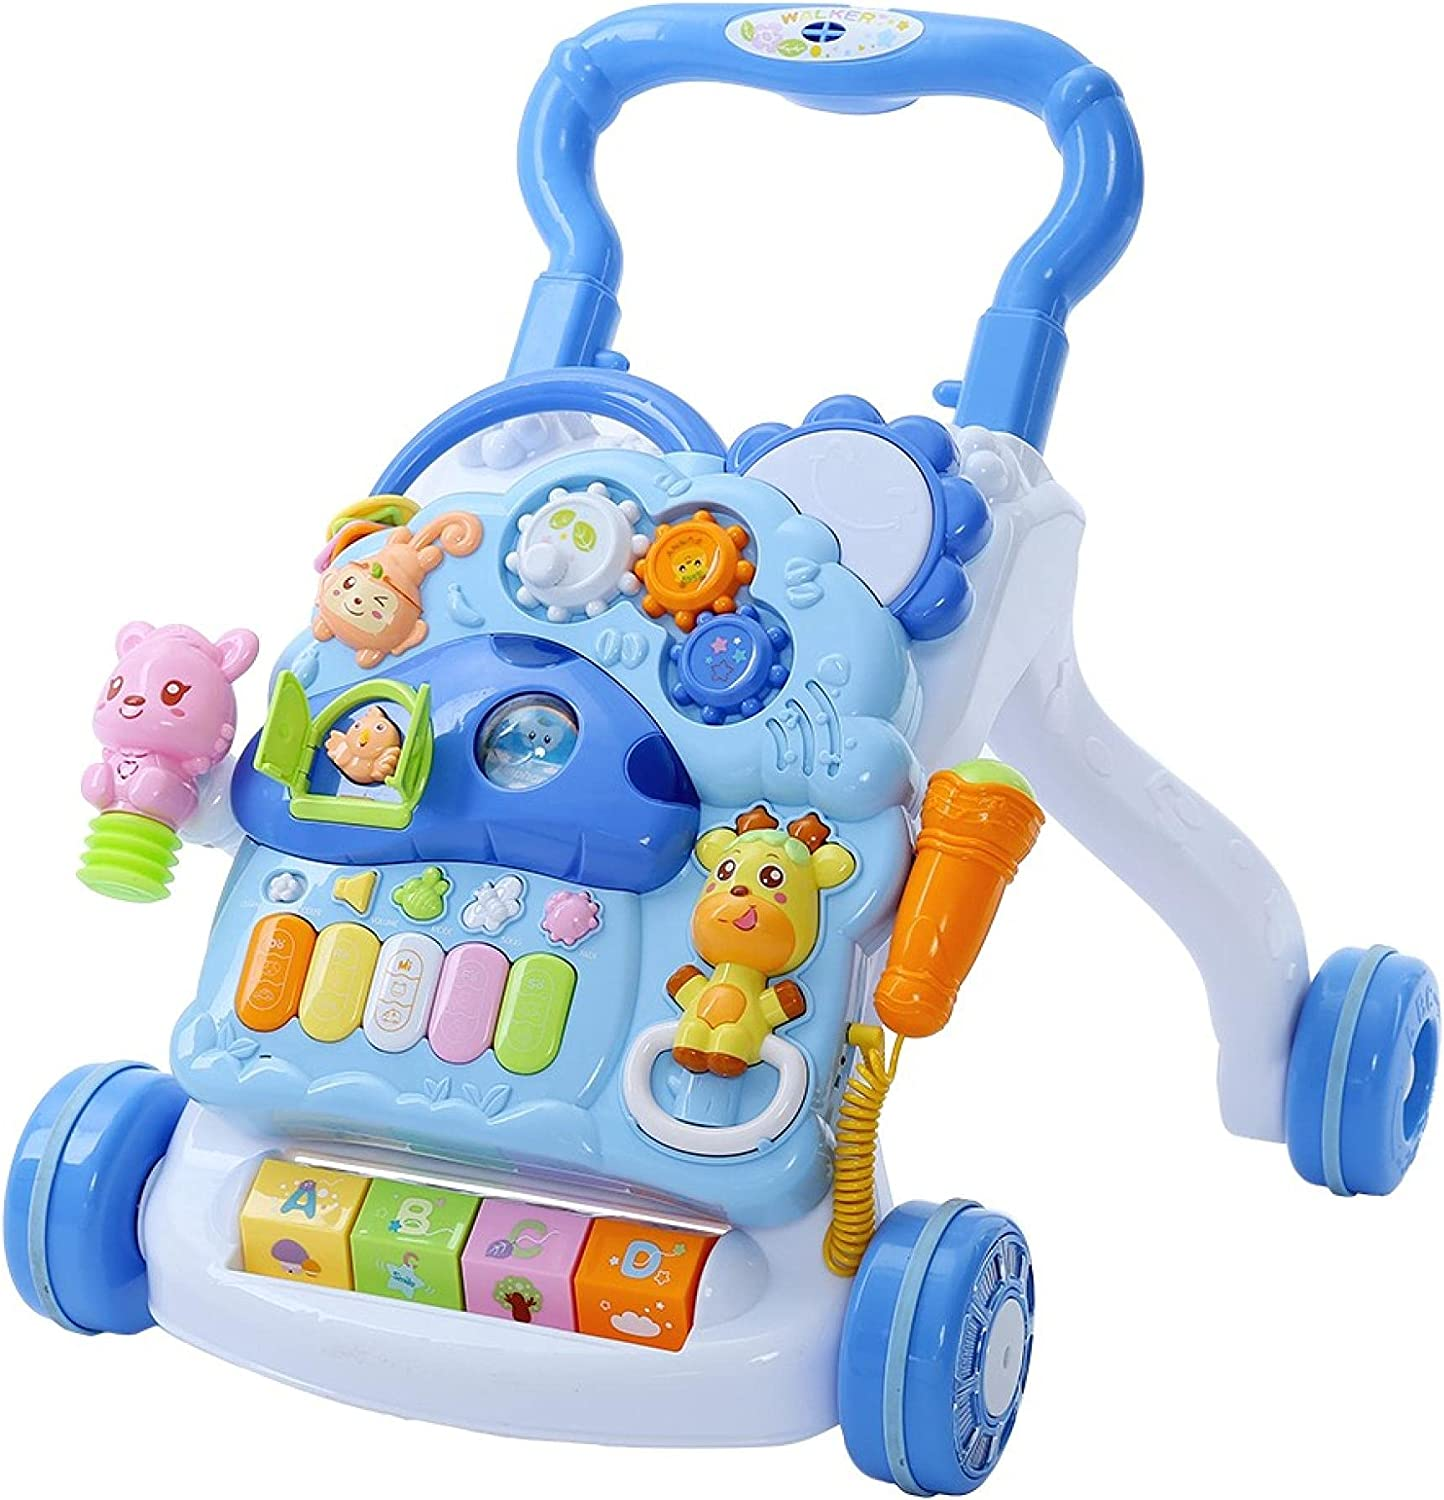 Huokan Multifunction Learning Walker Chicago Mall Sit-to-Sta Baby Arlington Mall Drum Piano